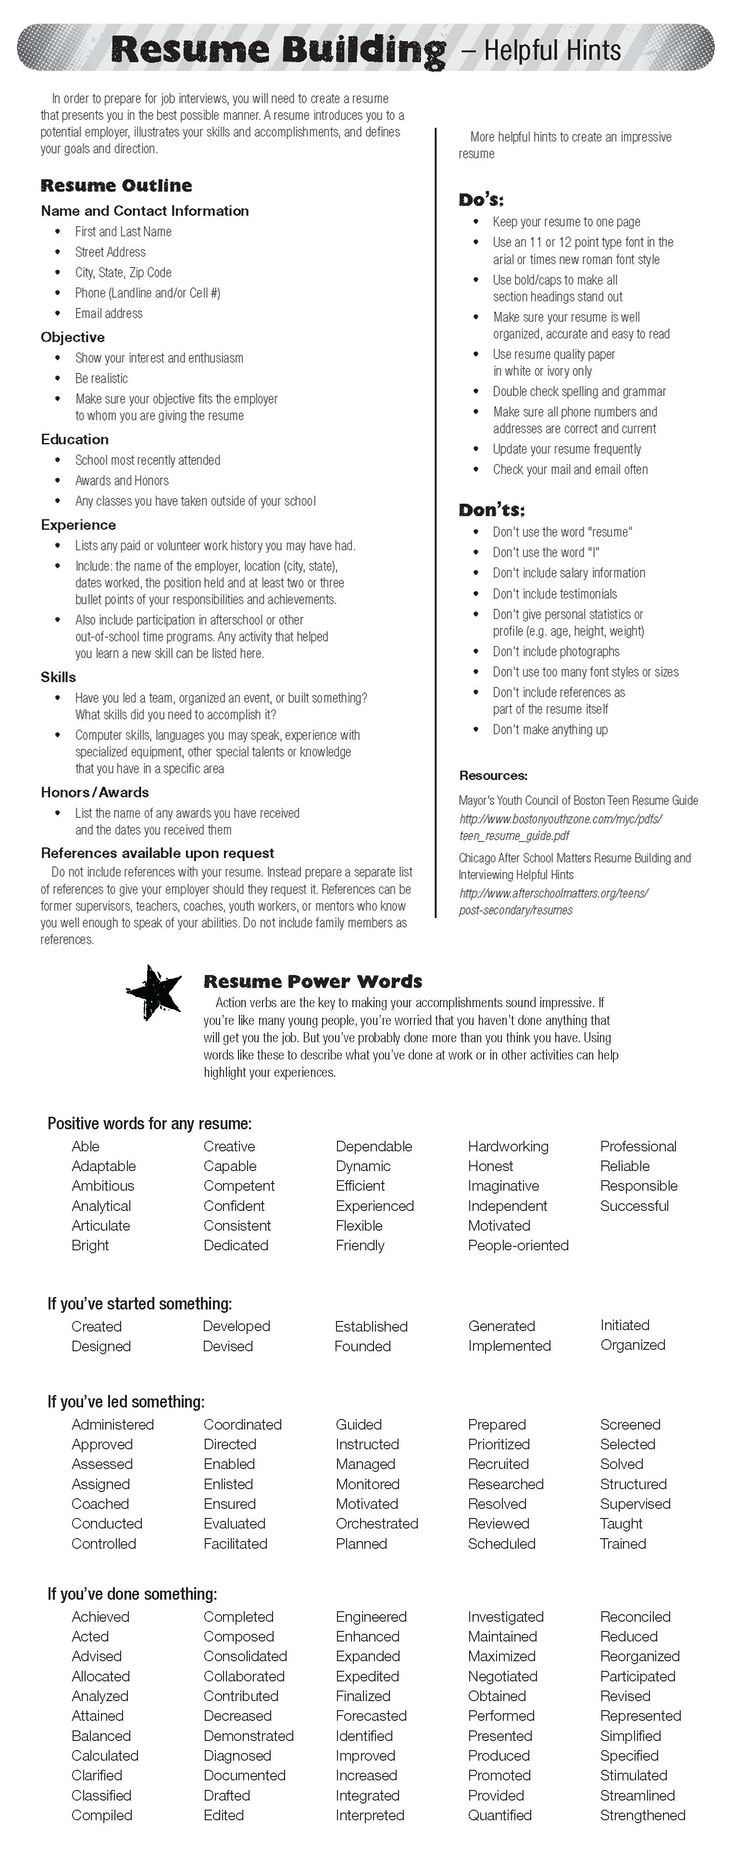 Opposenewapstandardsus  Winsome  Ideas About Resume On Pinterest  Cv Format Resume Cv And  With Outstanding  Ideas About Resume On Pinterest  Cv Format Resume Cv And Resume Templates With Astounding Hvac Resume Objective Also Resume Tracking Software In Addition Online Resume Help And What Font To Use For A Resume As Well As Auto Tech Resume Additionally High School Grad Resume From Pinterestcom With Opposenewapstandardsus  Outstanding  Ideas About Resume On Pinterest  Cv Format Resume Cv And  With Astounding  Ideas About Resume On Pinterest  Cv Format Resume Cv And Resume Templates And Winsome Hvac Resume Objective Also Resume Tracking Software In Addition Online Resume Help From Pinterestcom